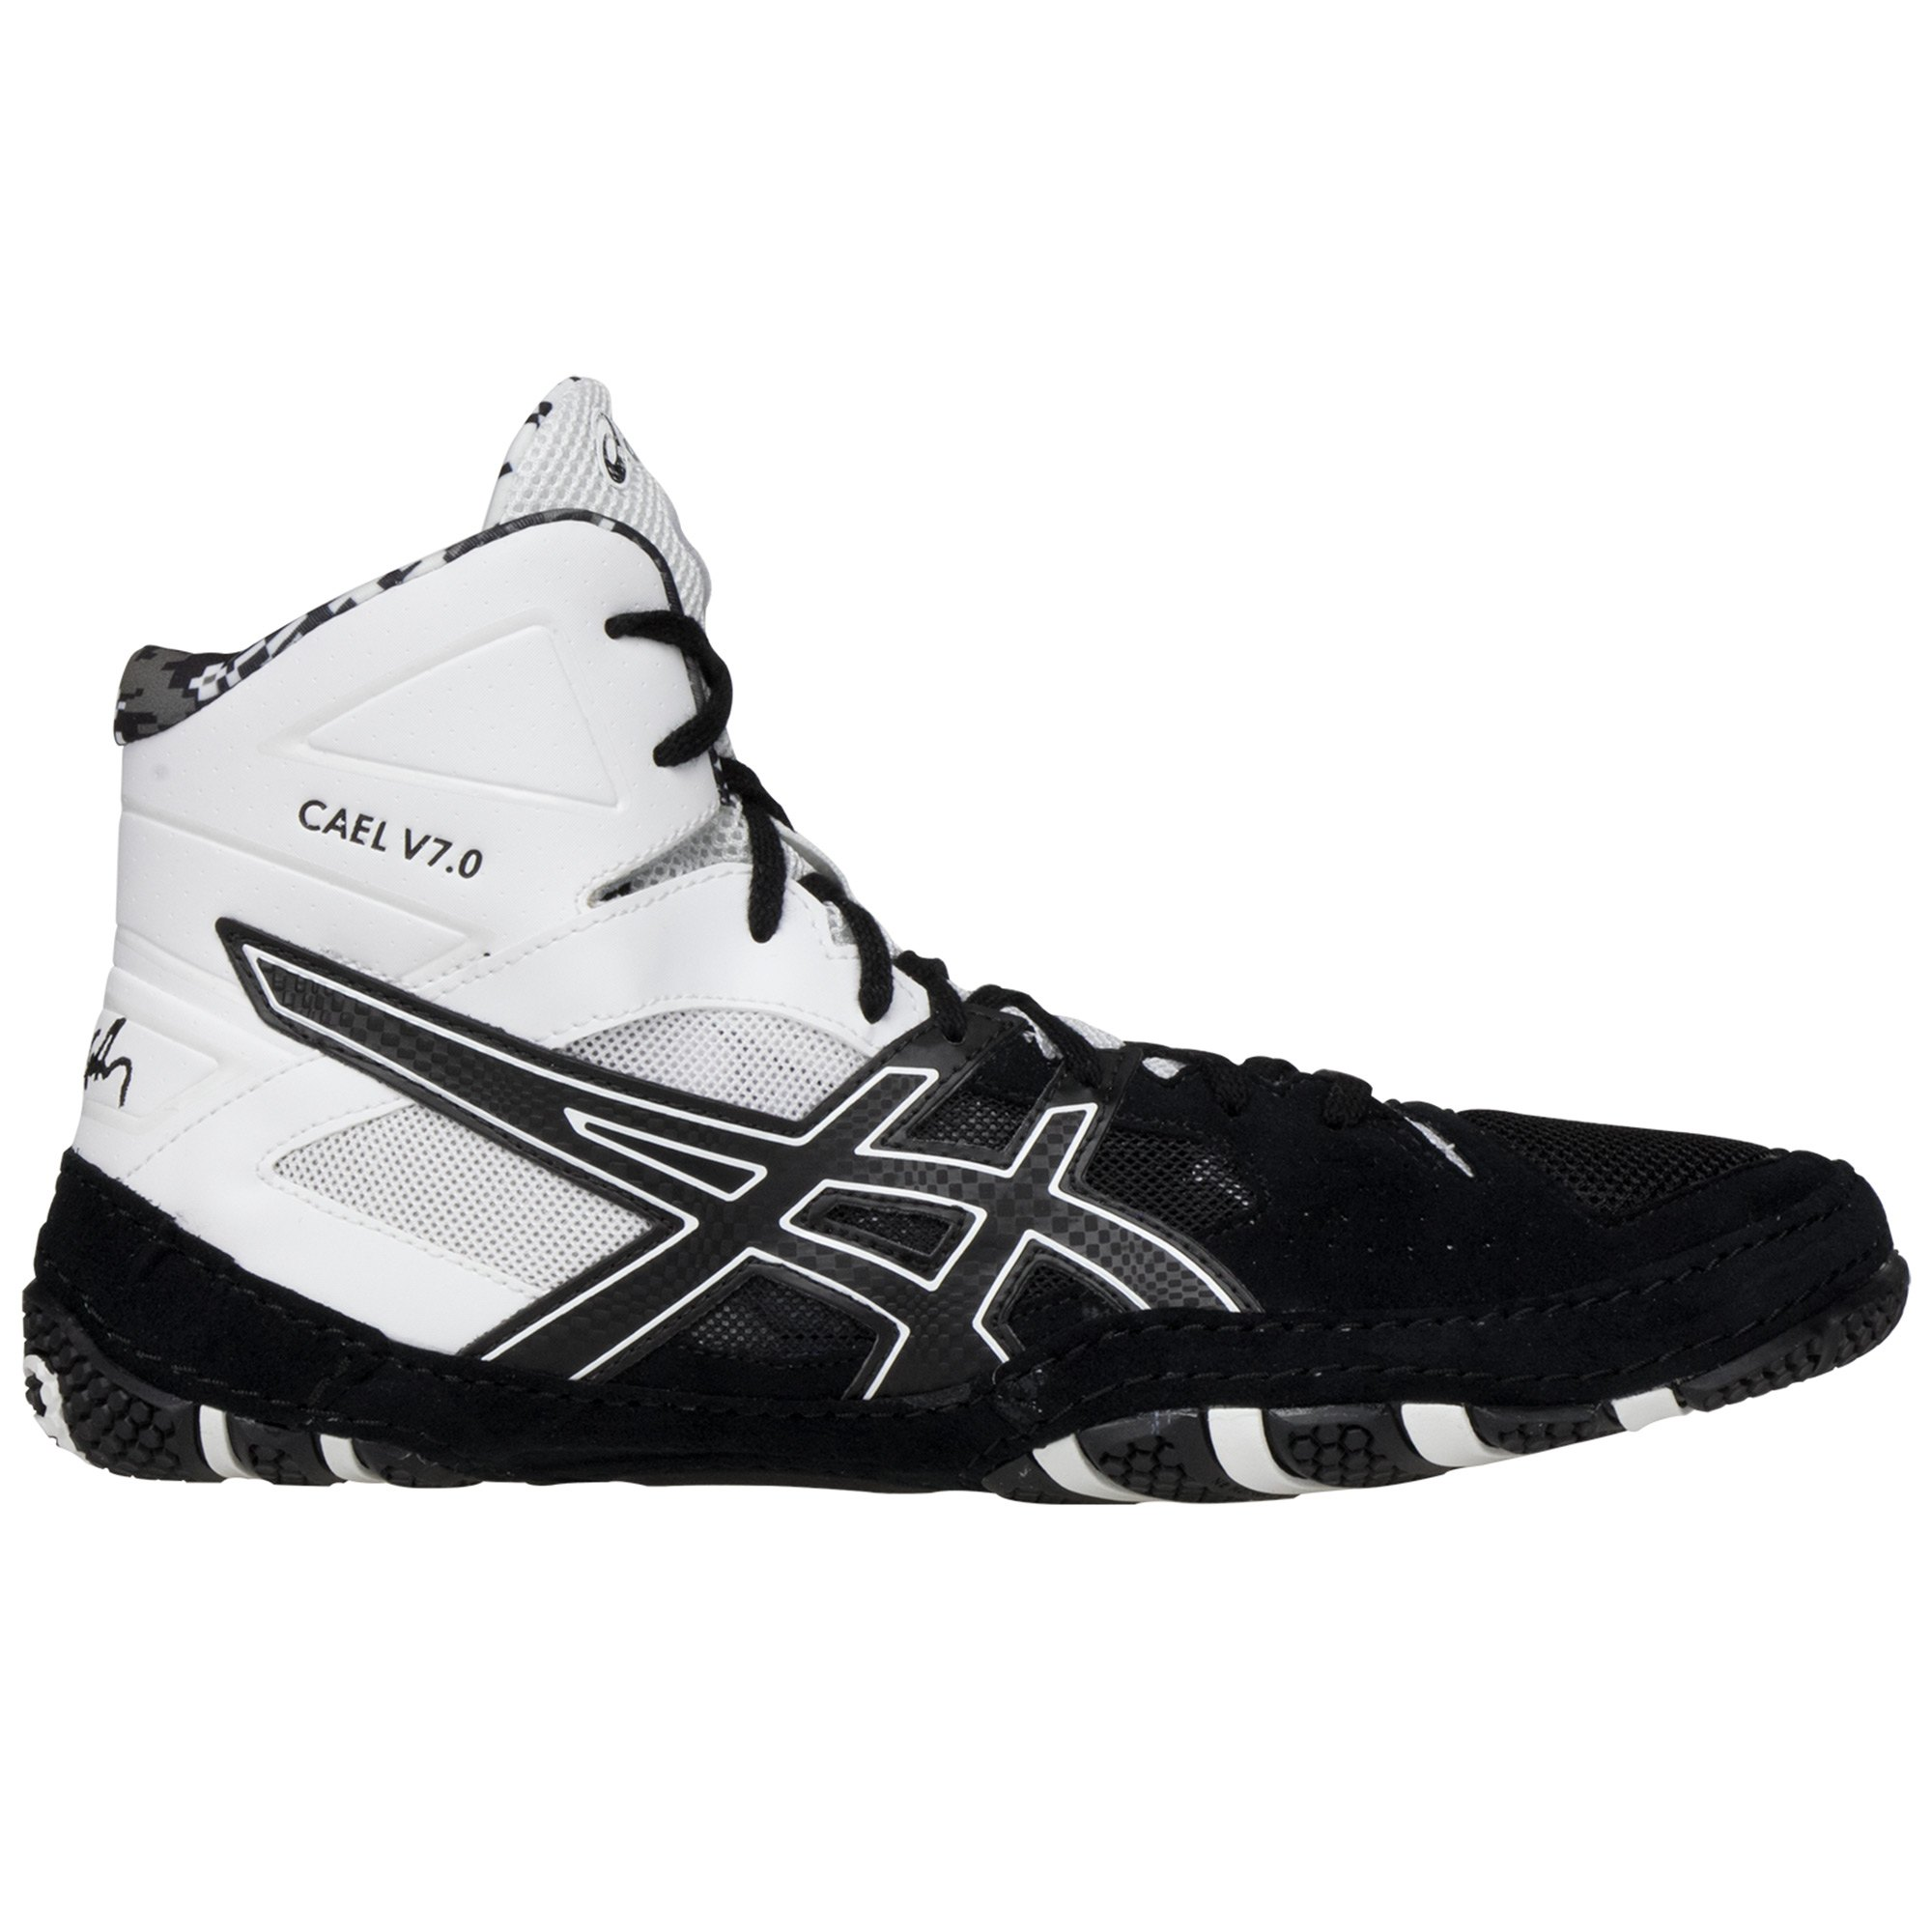 9035471428ec ... Cael V7.0 Black Black White insideASICS Cael V7.0 Black Black White  frontASICS Cael V7.0 Black Black White backASICS Cael V7.0 Black Black  White sole